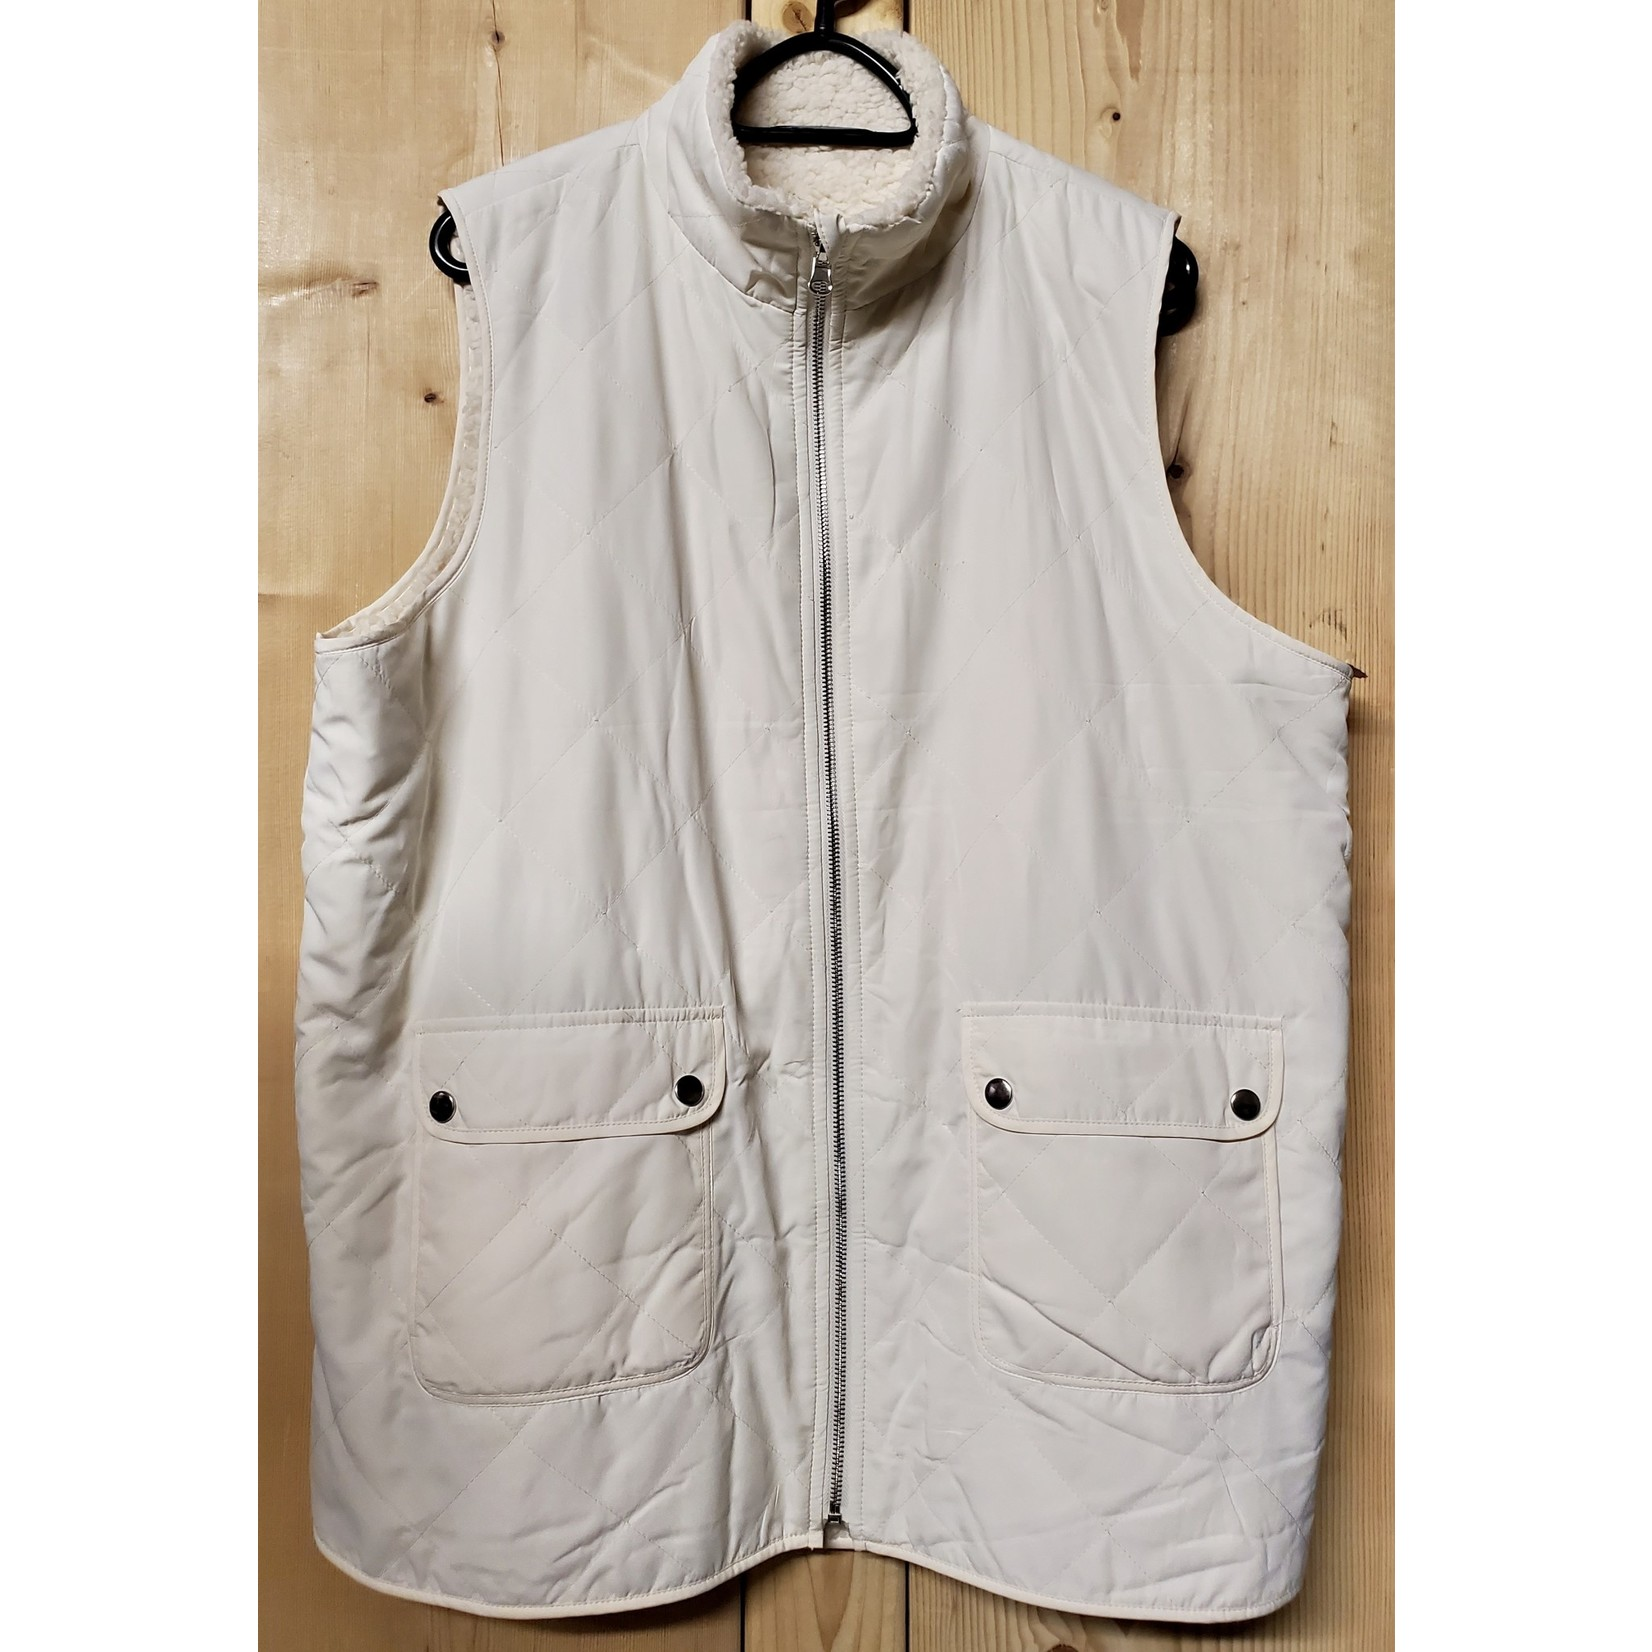 ENTRO,INC. Plus Size Cream Reversible Quilted & Shearling Lined Vest